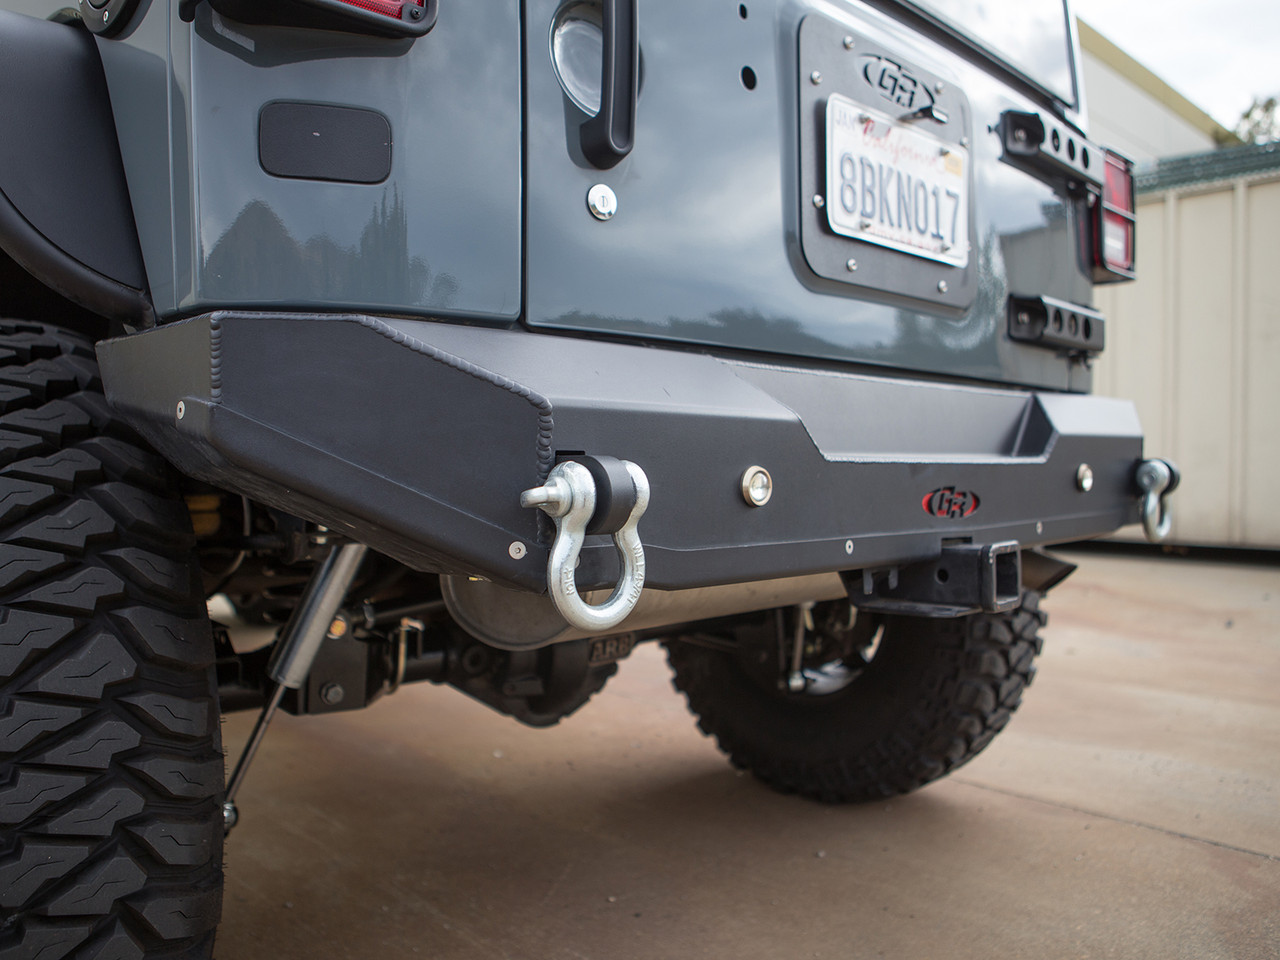 GR rear bumper Powder Coated Black